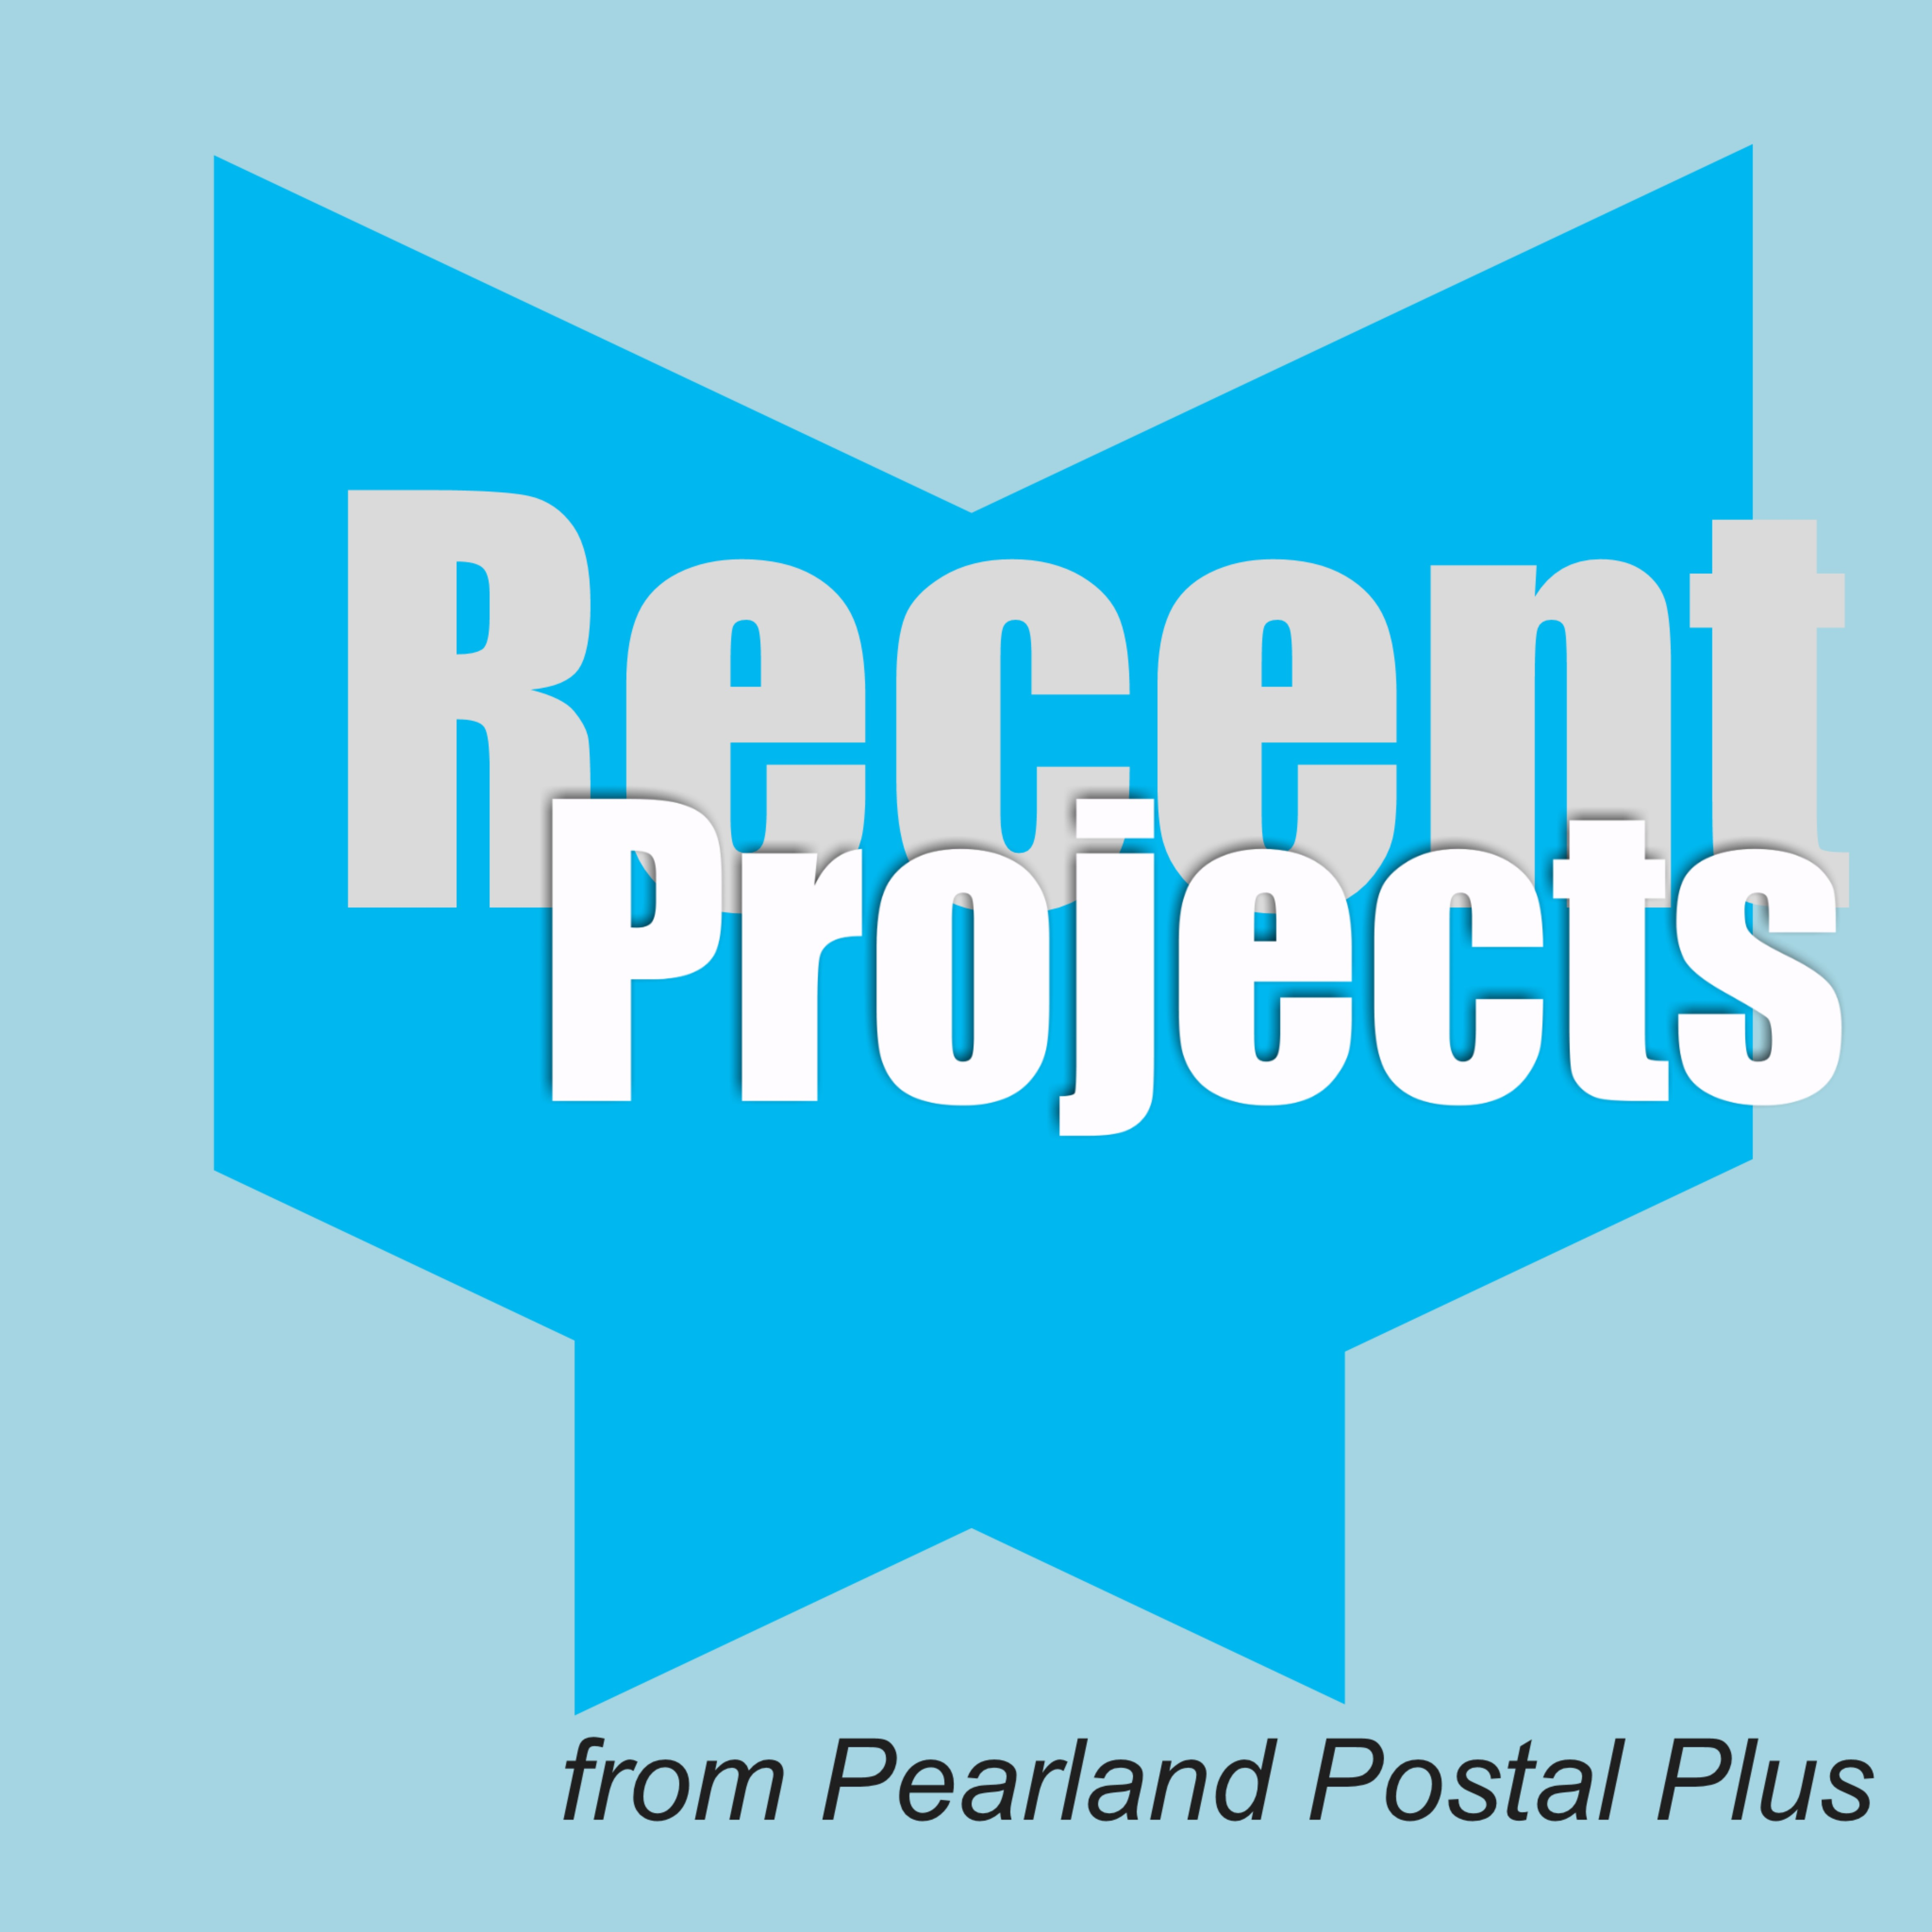 Pearland Postal Plus Projects